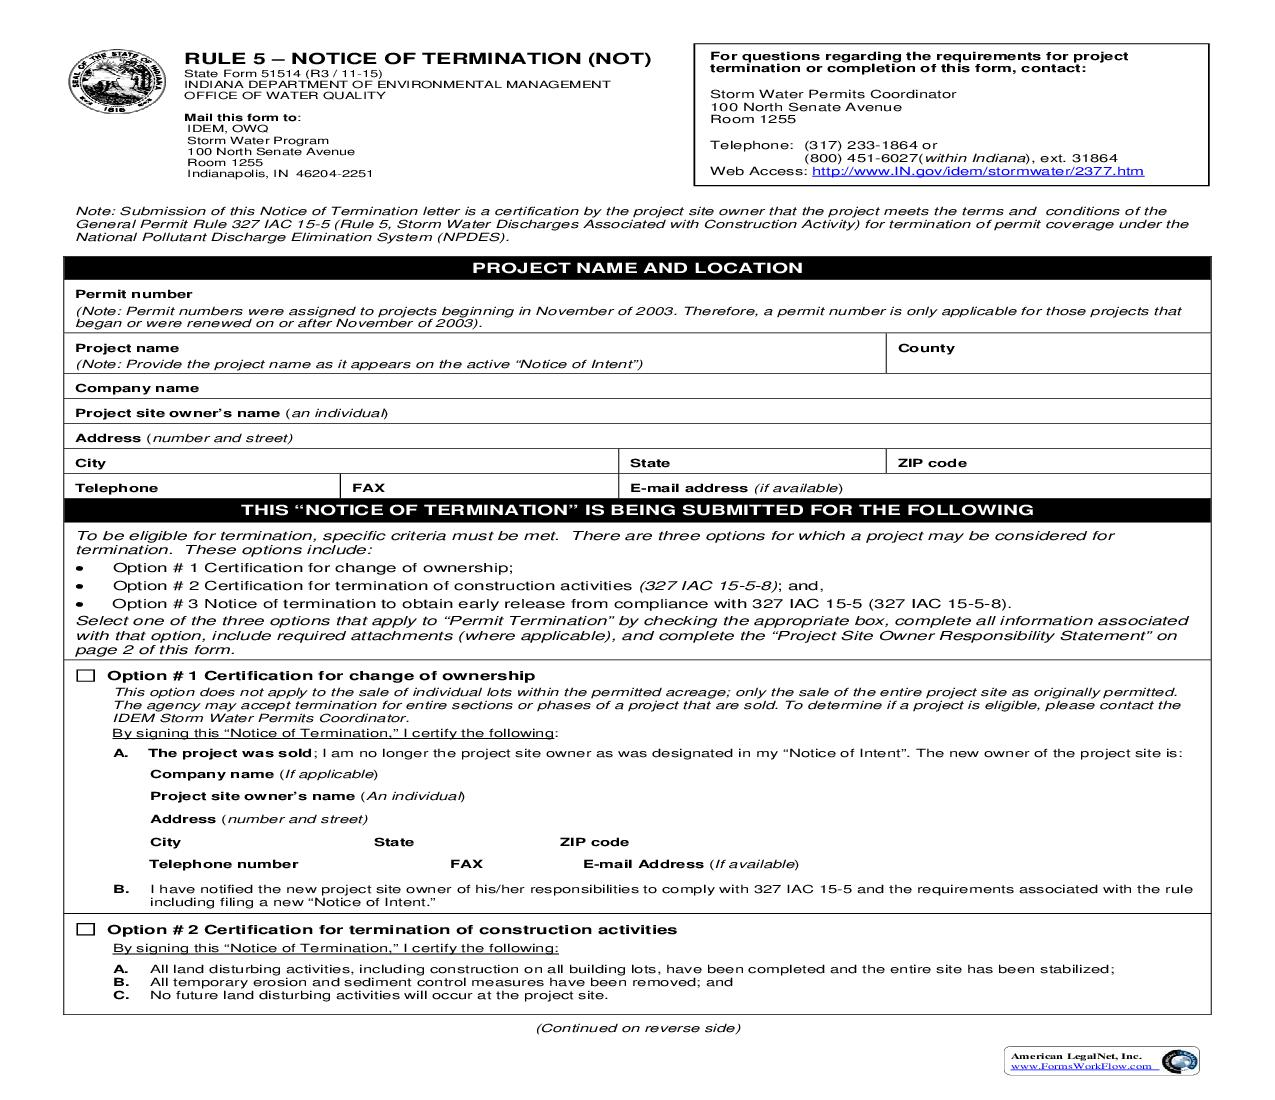 Rule 5 Notice Of Termination (NOT) {51514}   Pdf Fpdf Doc Docx   Indiana